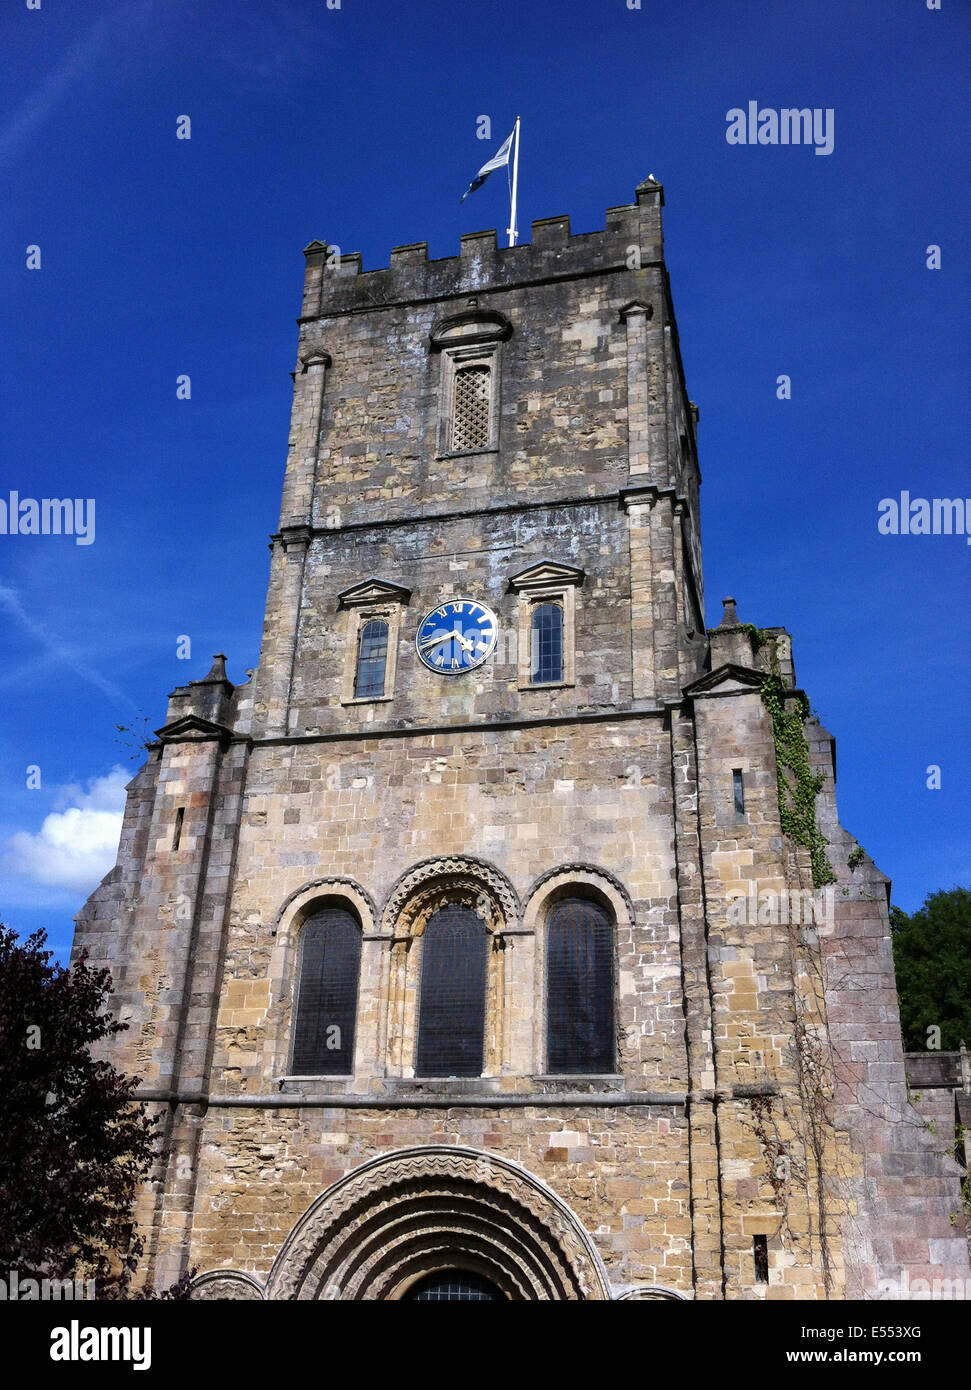 CHEPSTOW, Wales. Tower of St Mary's Church. Photo Tony Gale - Stock Image